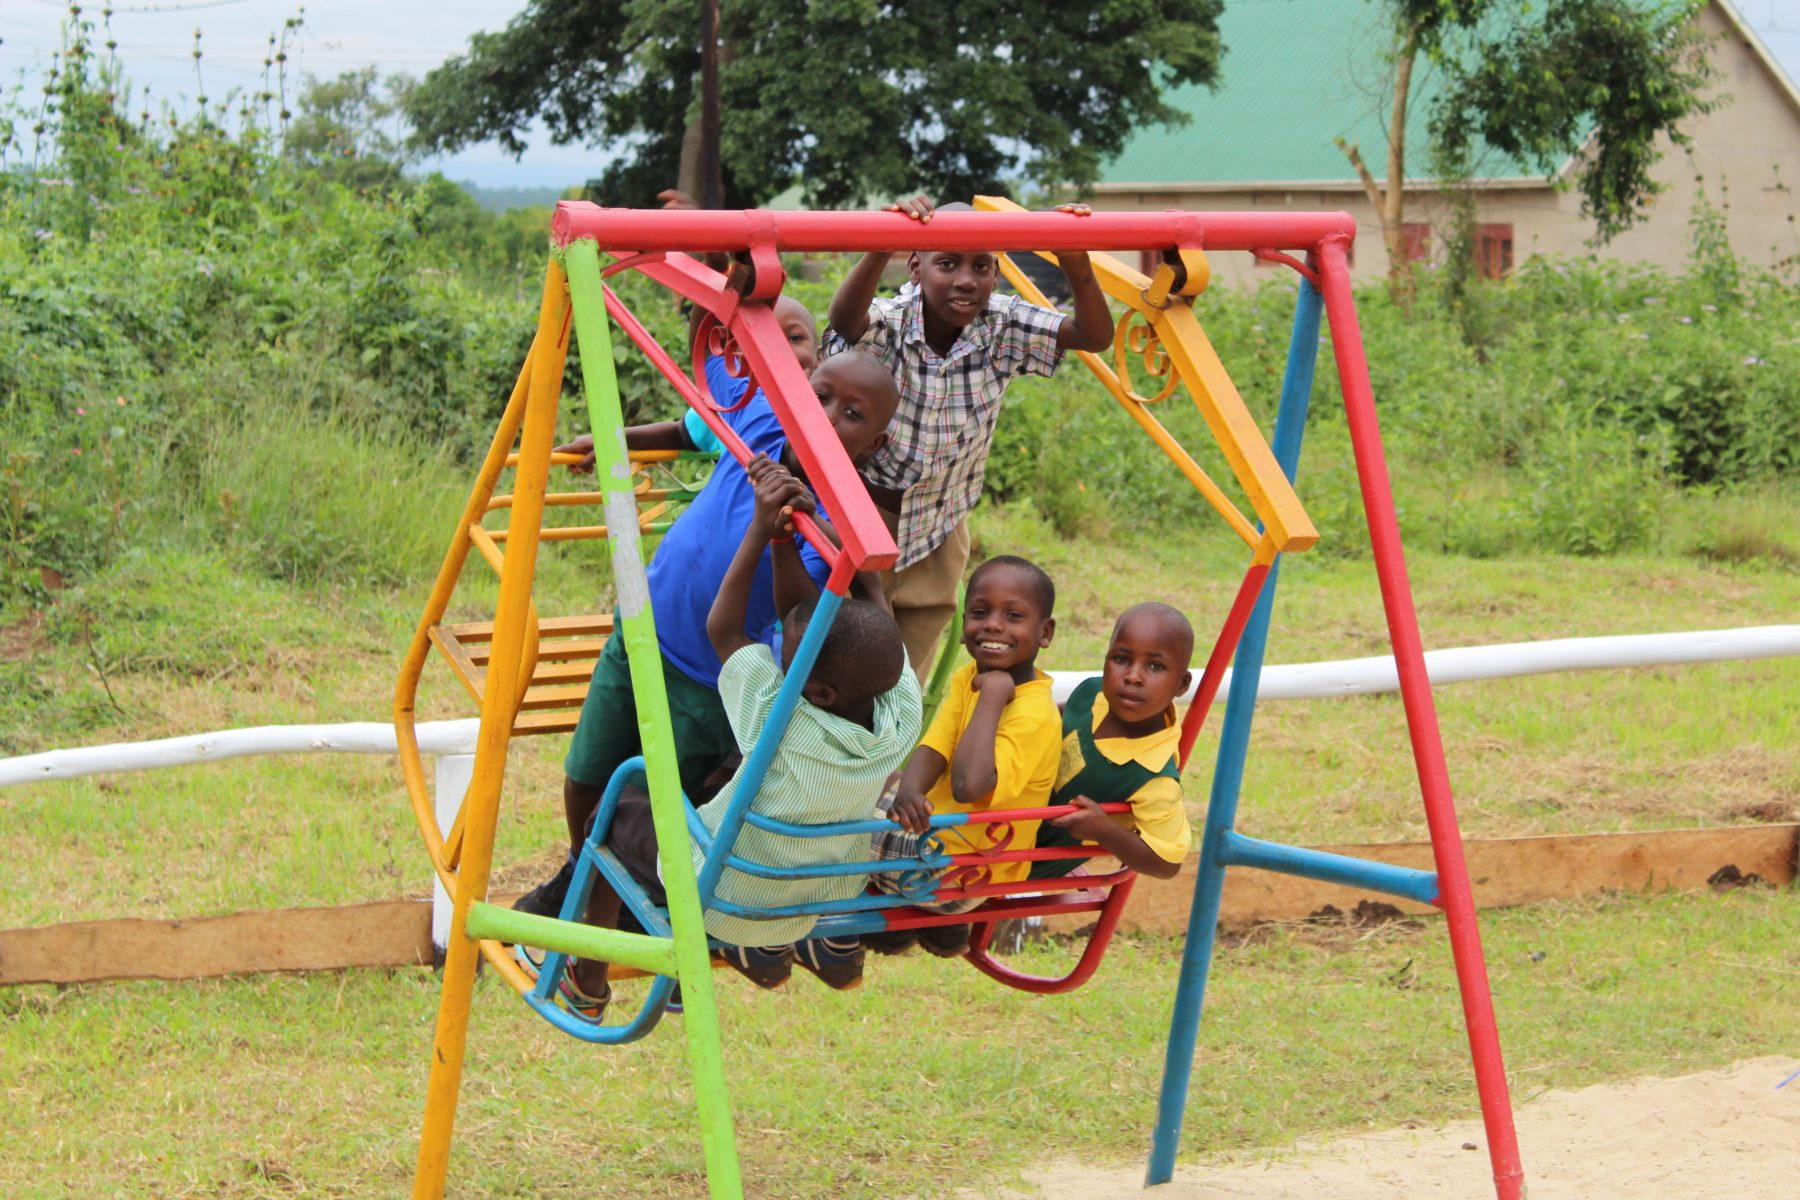 Six Happy Students Enjoying the Brightly Coloured Bench Swing